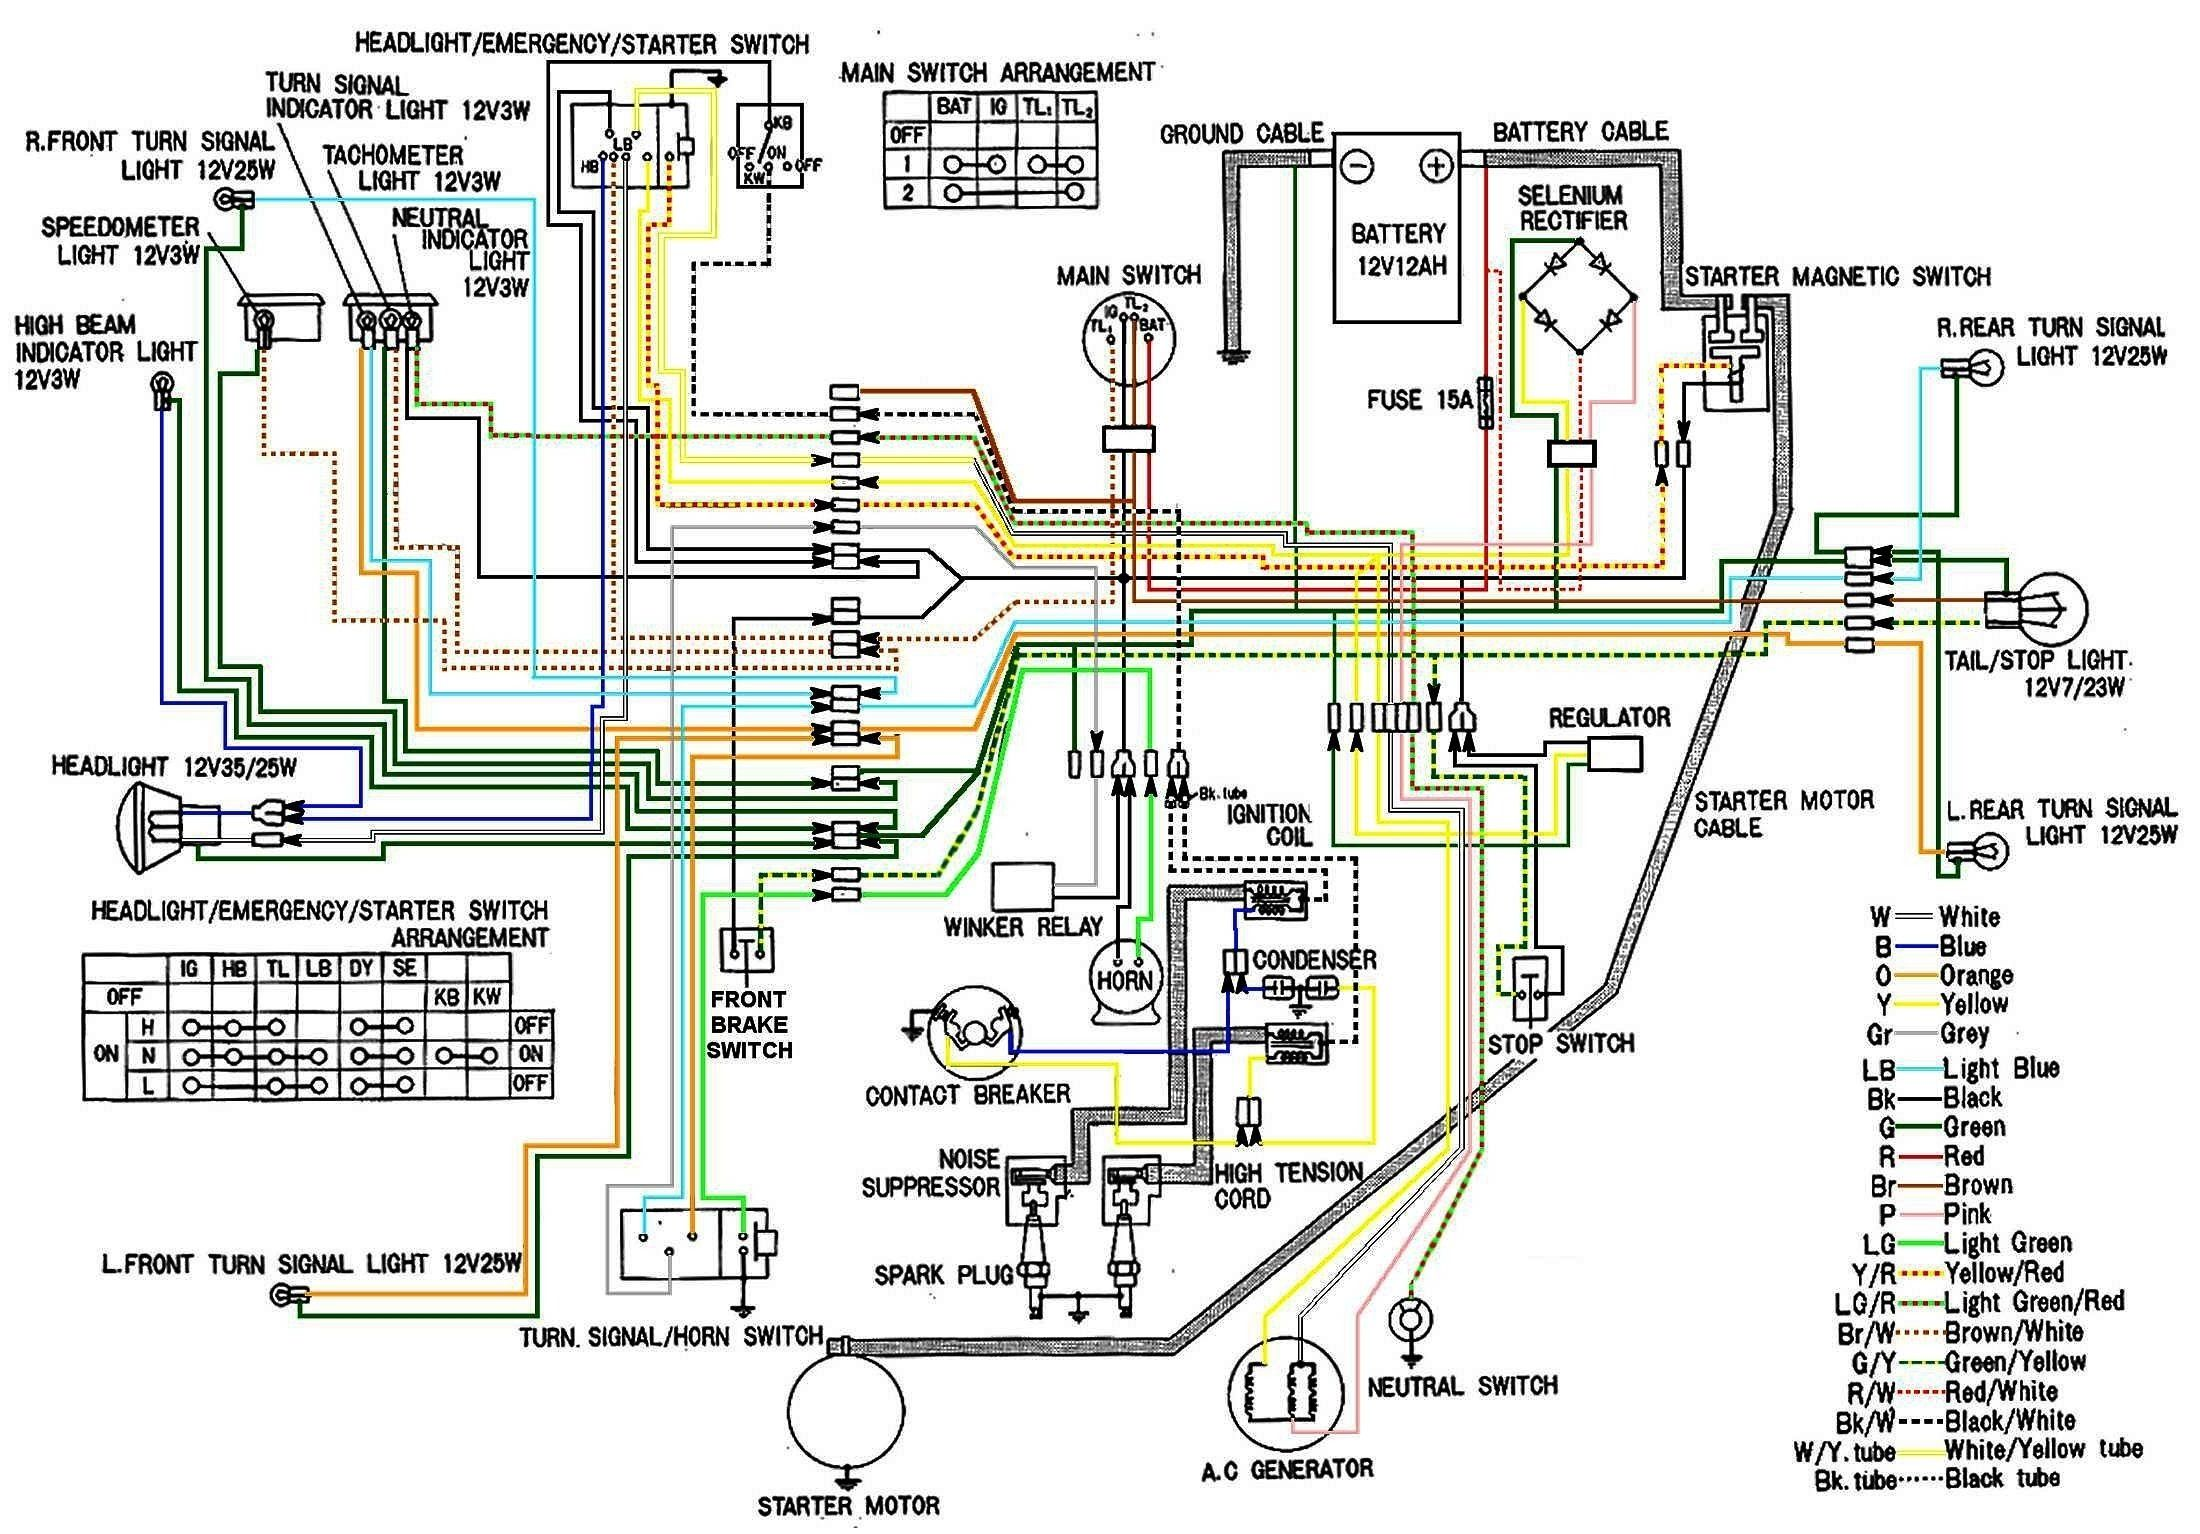 gl 1800 wiring diagram wiring diagram centre 2008 goldwing wiring diagram starter [ 2200 x 1534 Pixel ]